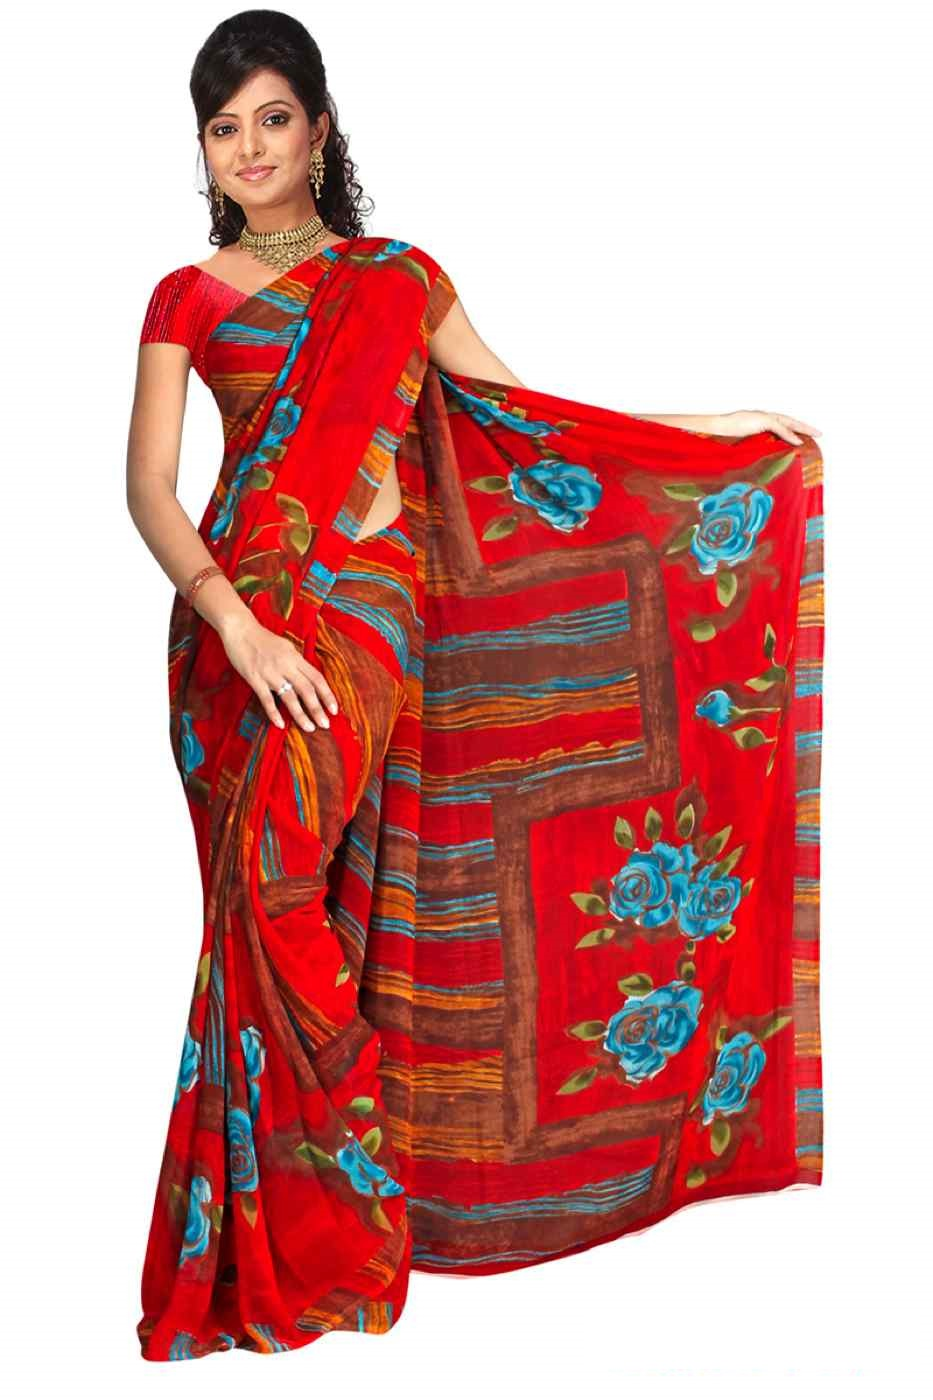 Indian Selections Bhakti Georgette Printed Casual Saree Sari Bellydance fabric at Sears.com